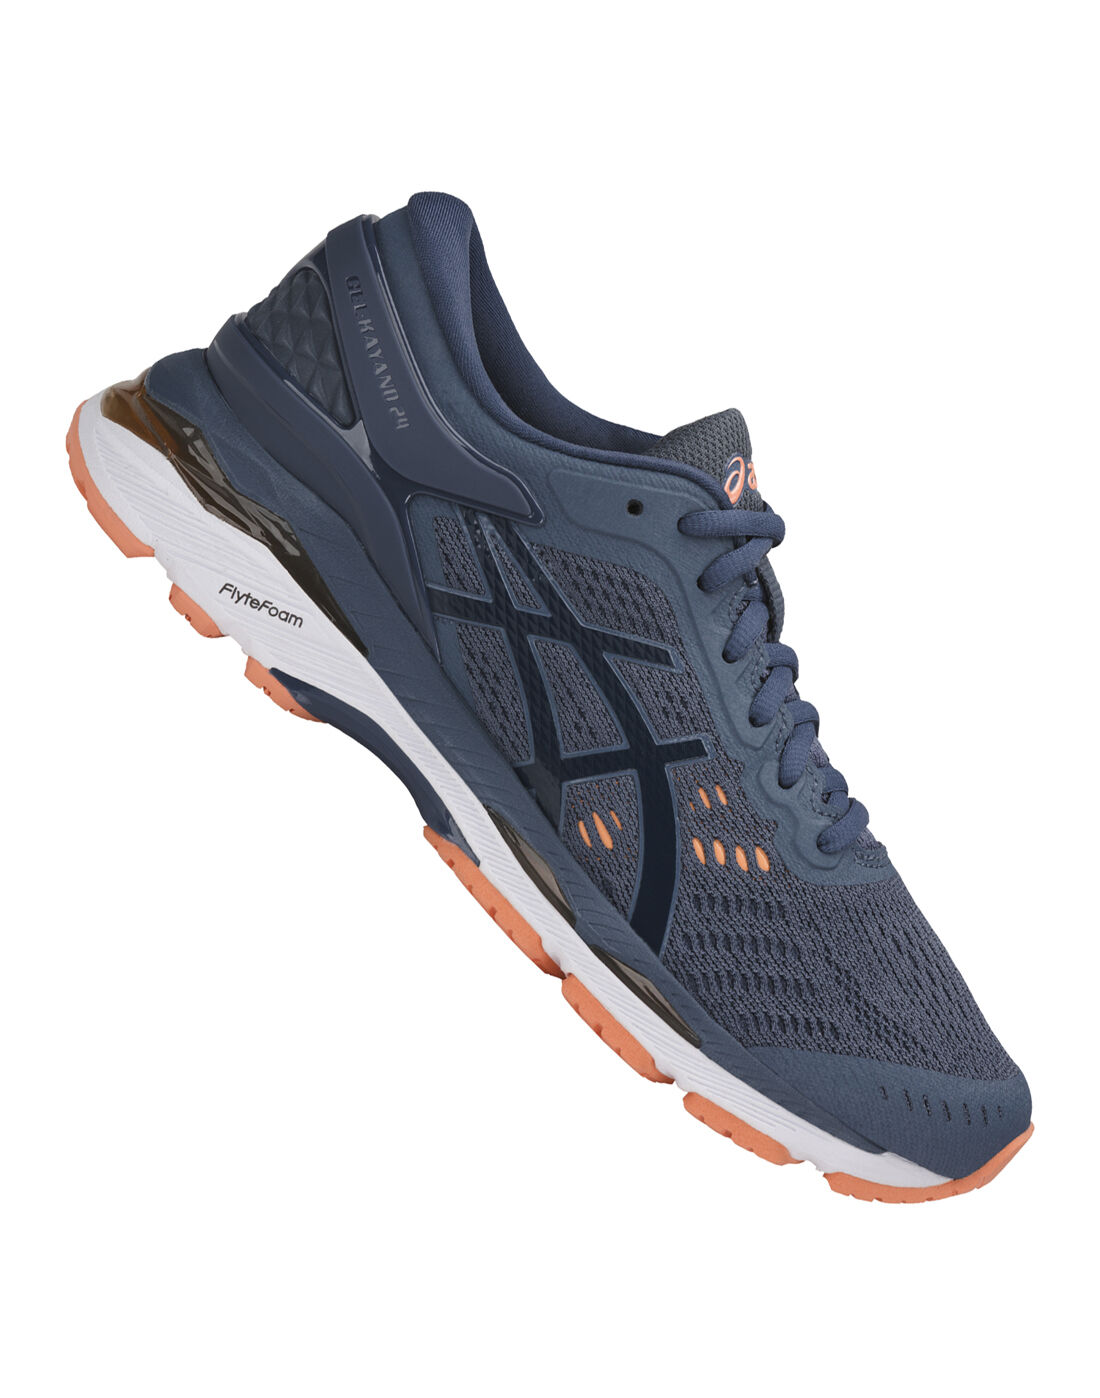 asics shoes lifestyle teenager clothes 654918